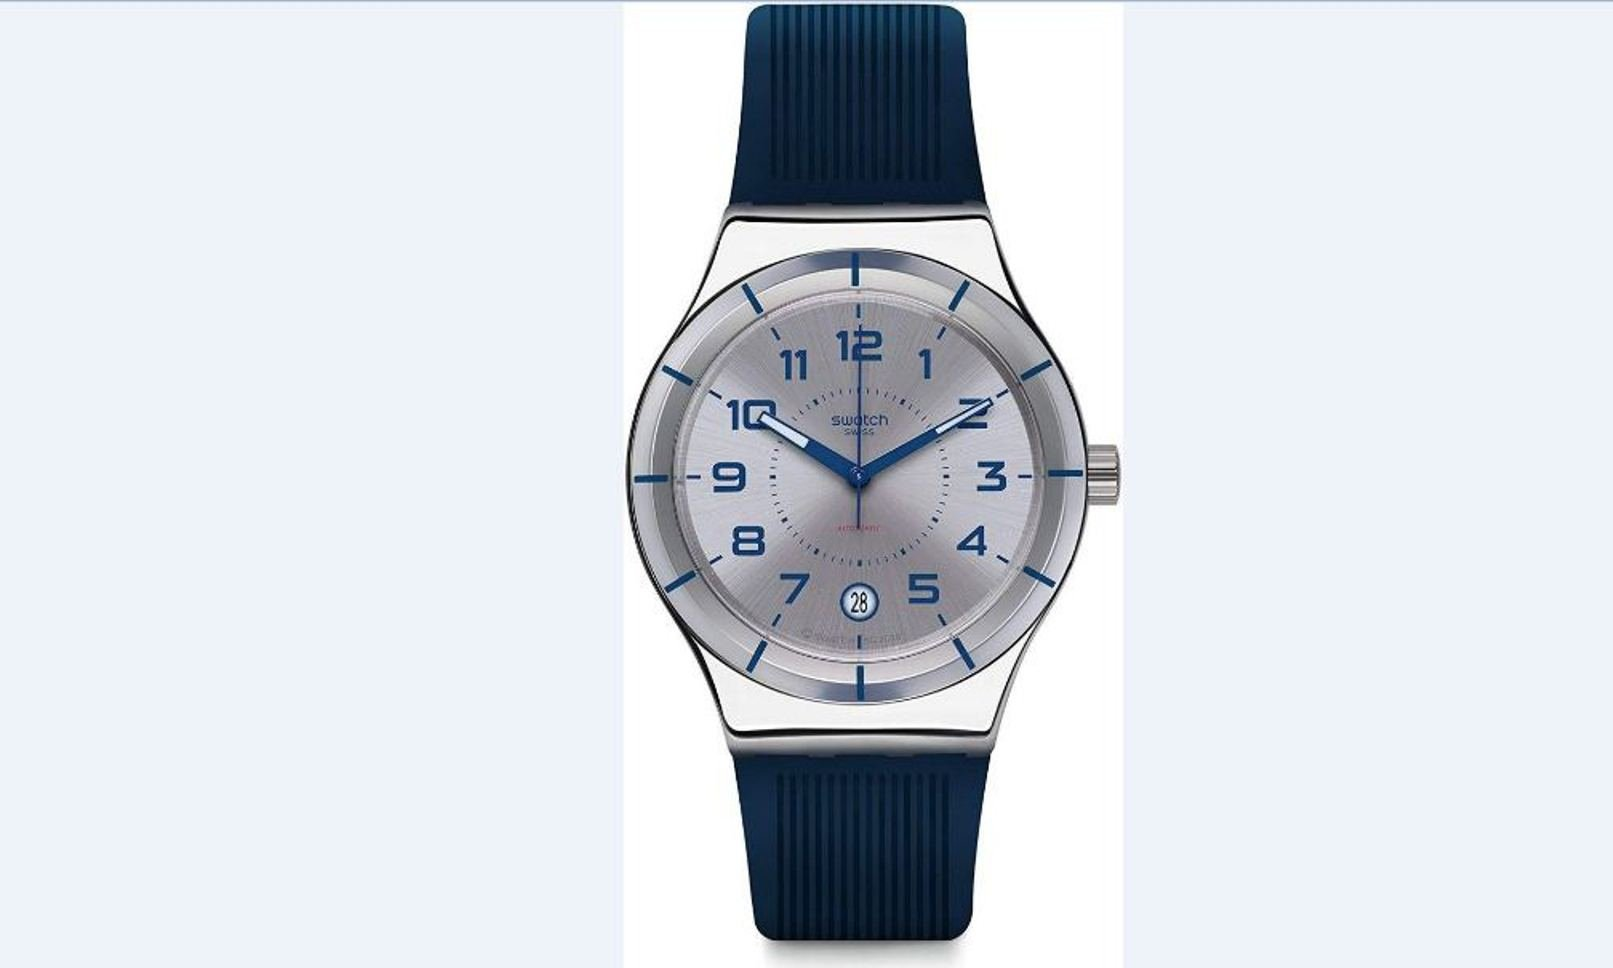 Swatch Irony Sistem Navy Automatic YIS409 Men's Watch: Cute And Futuristic